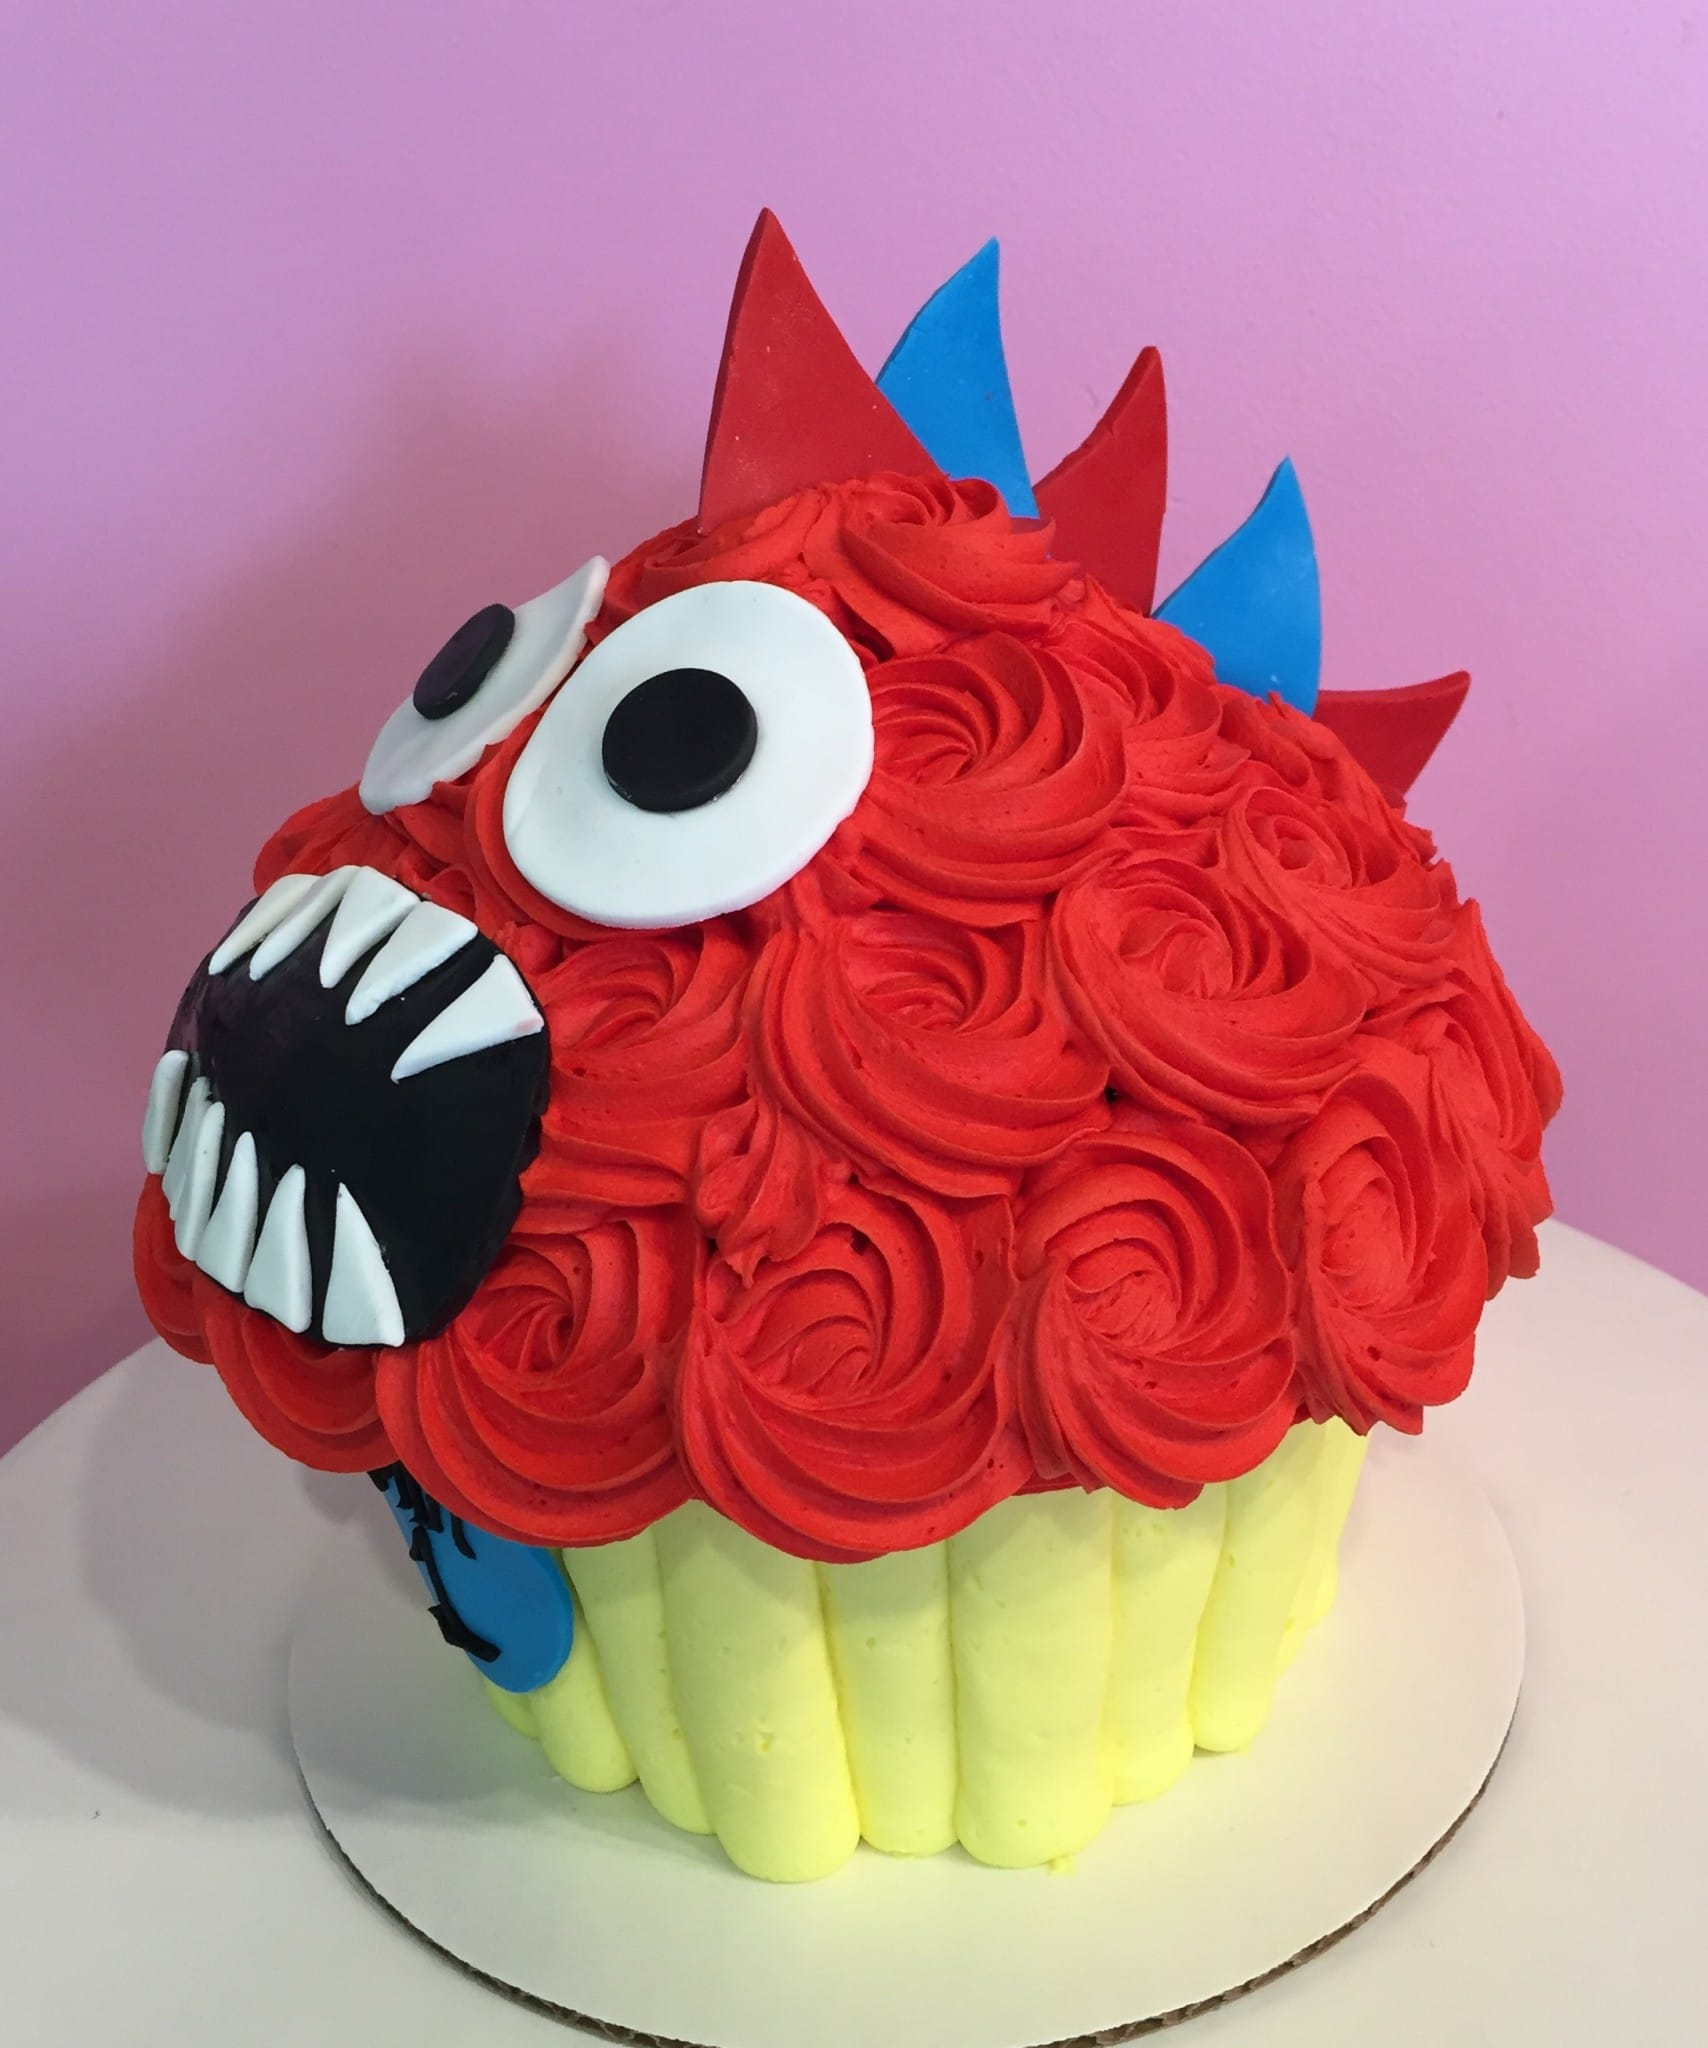 Giant Cupcake Cake Simply Tale